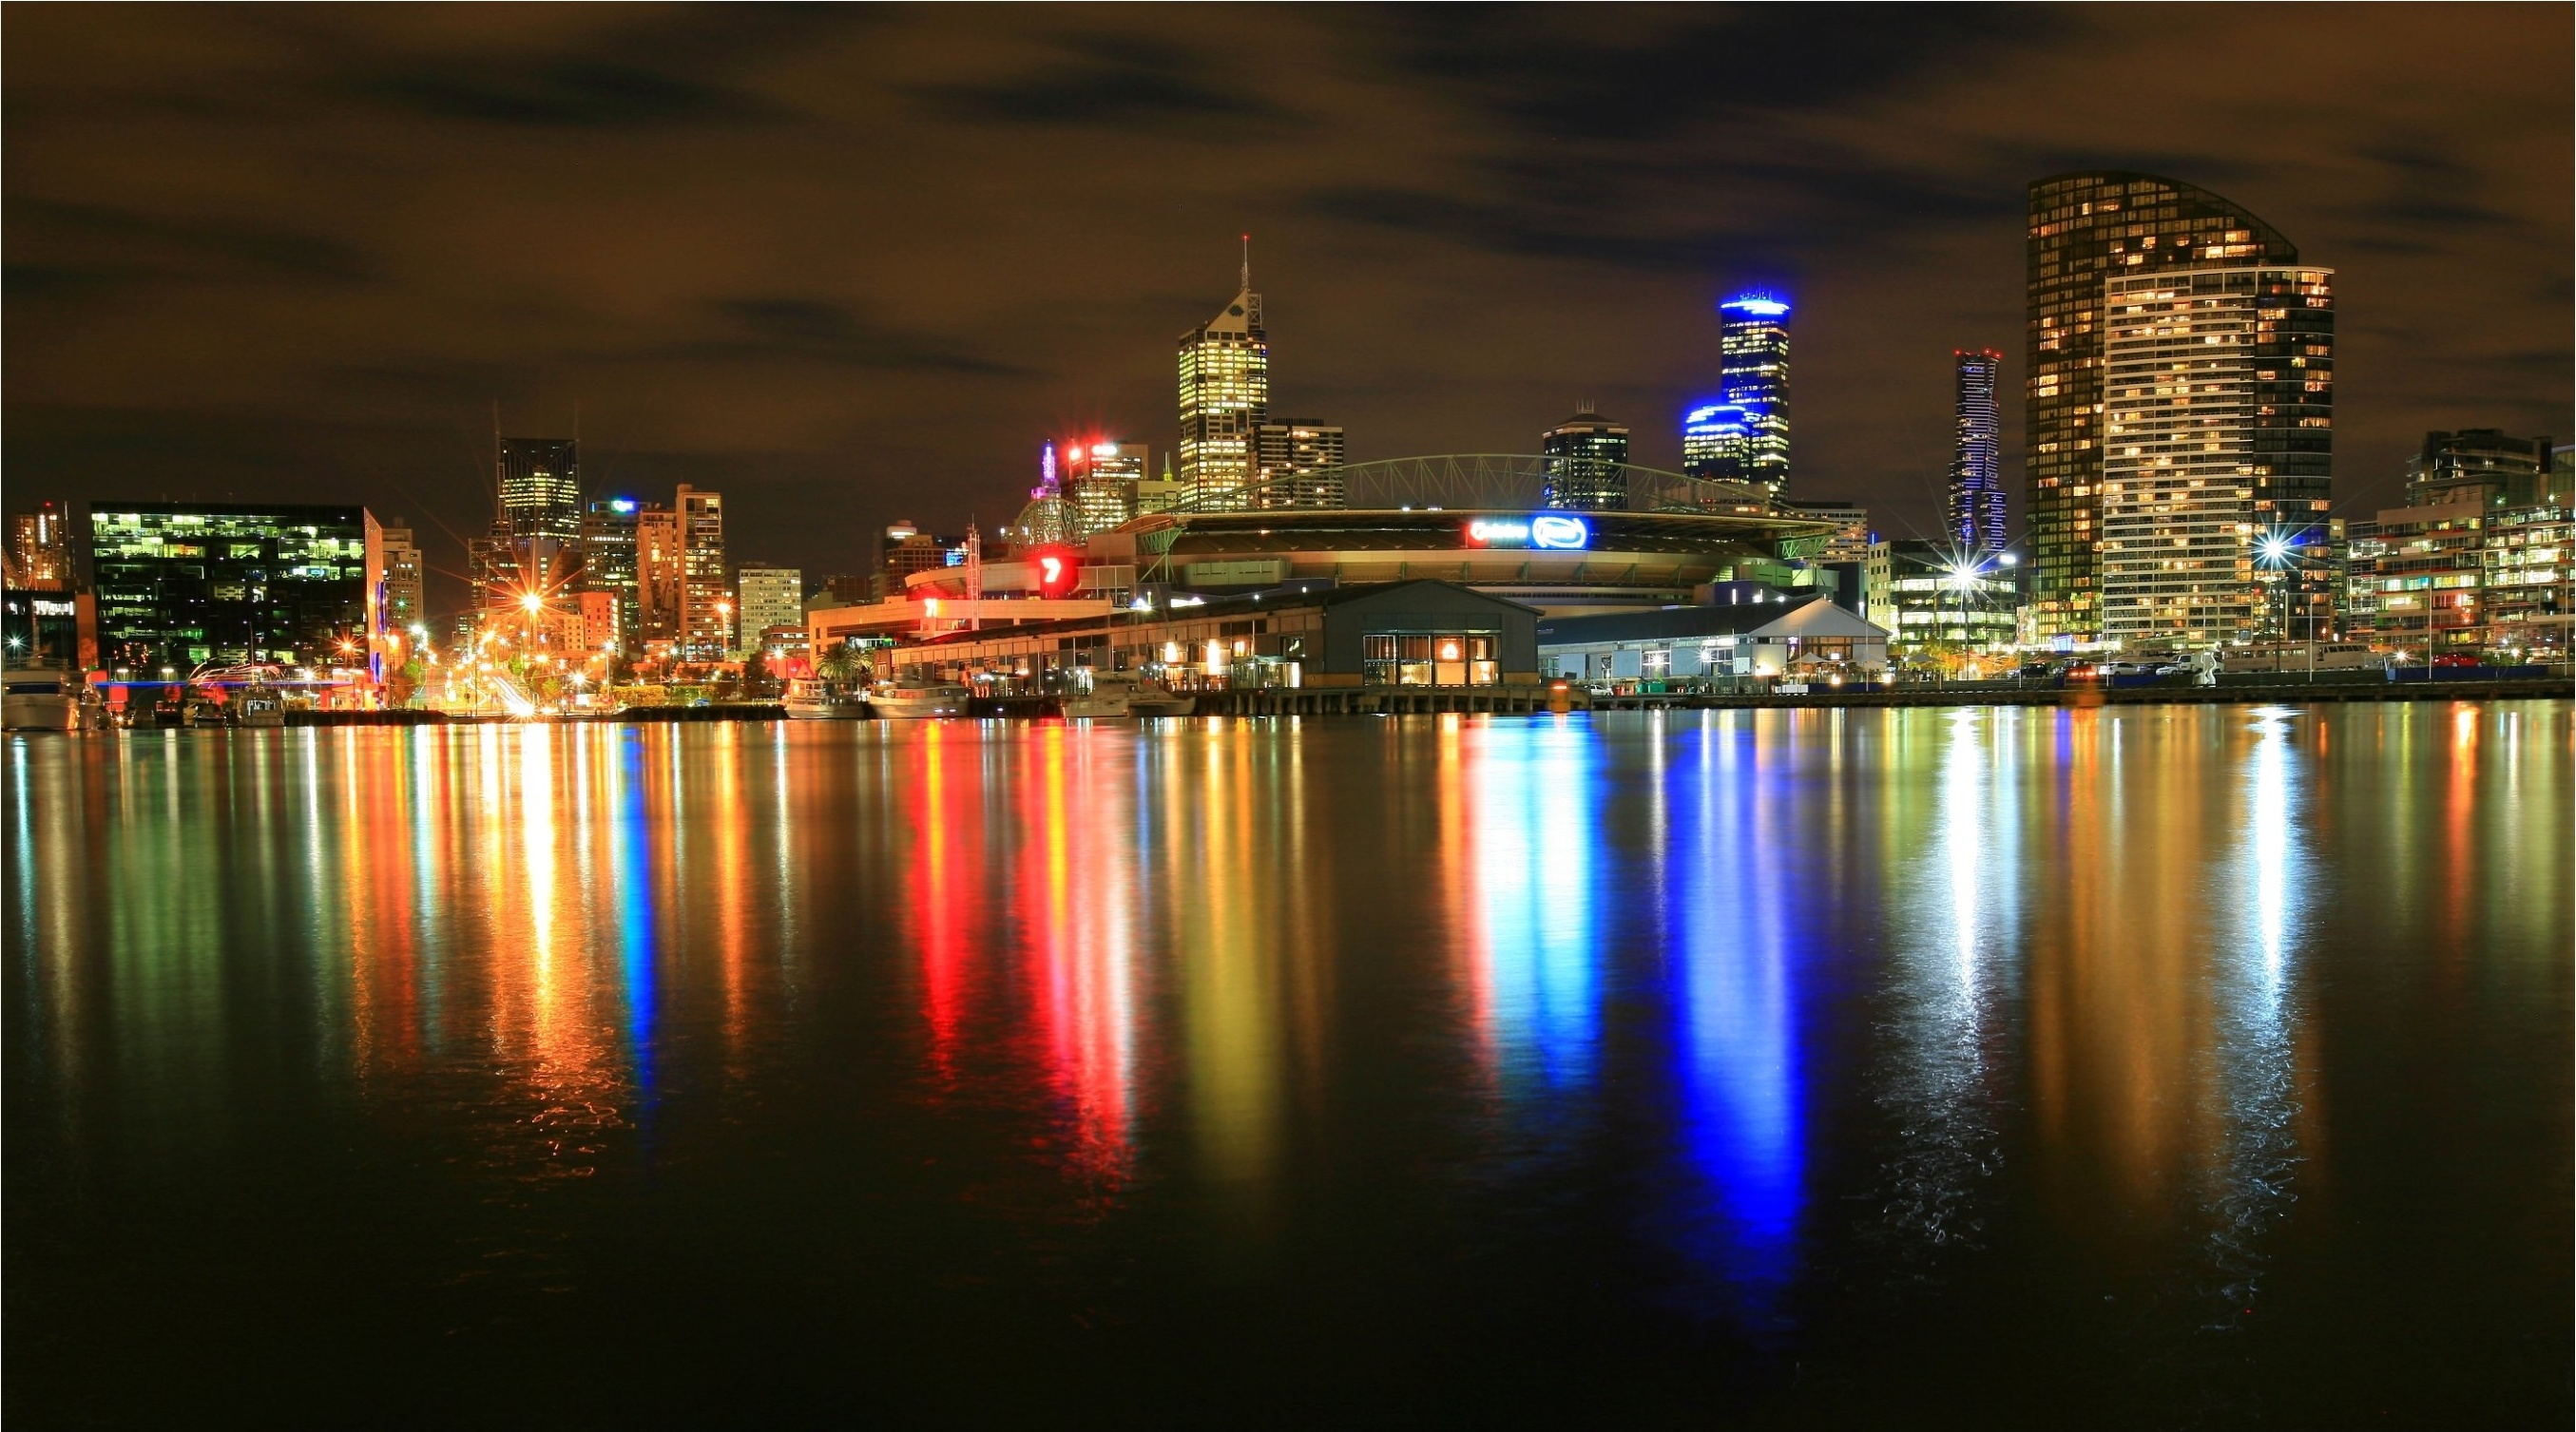 Newquay Docklands Melbourne reflection     g